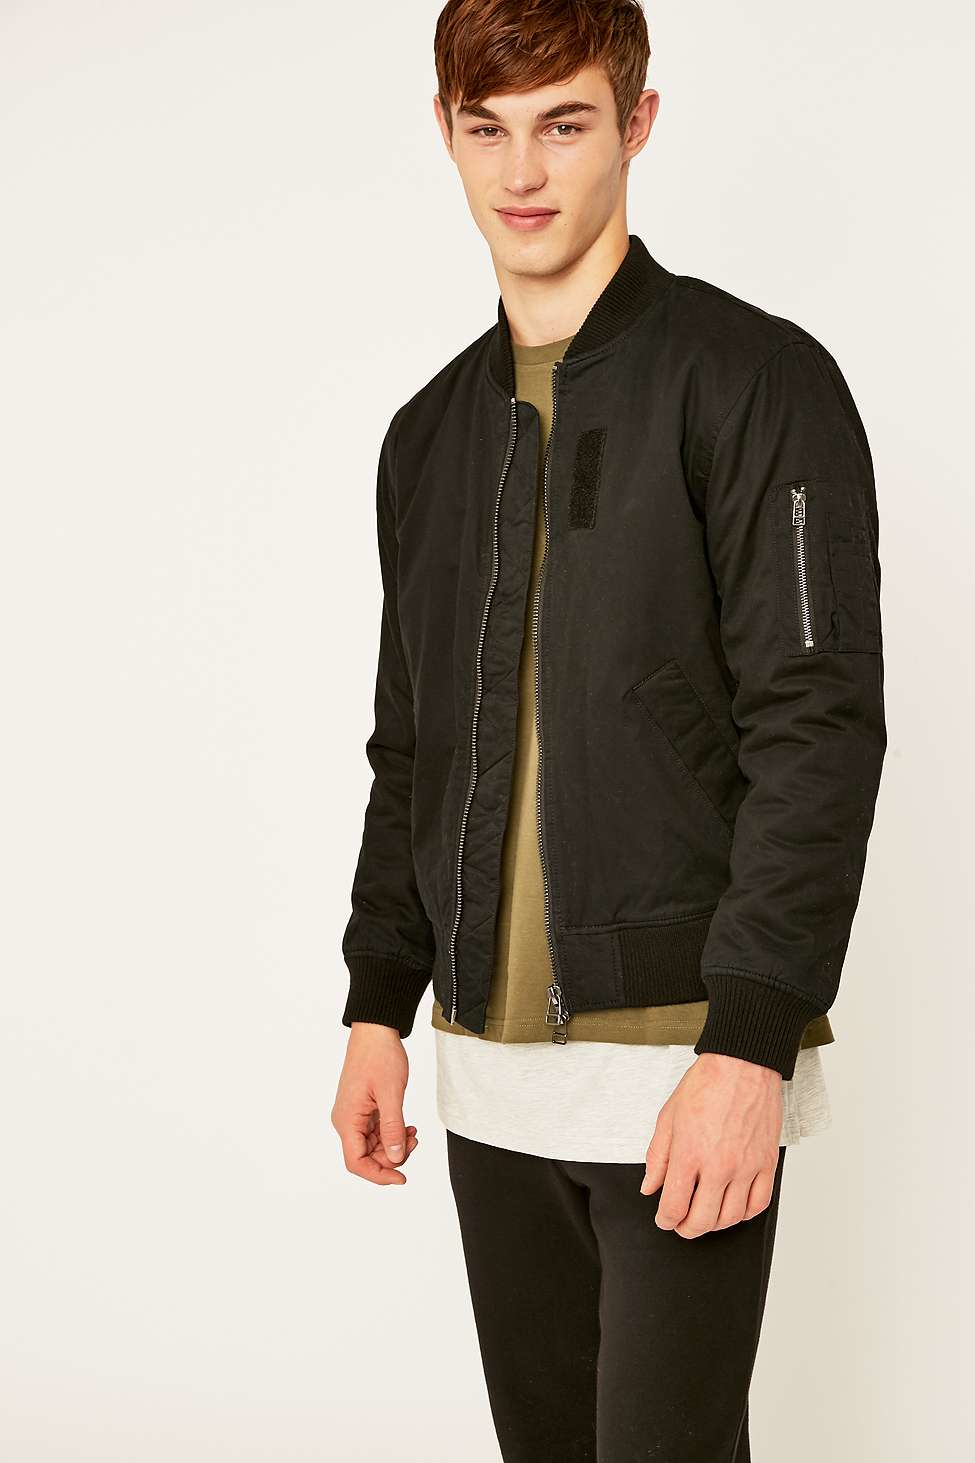 5d514a876 Urban Outfitters Austin Black Bomber Jacket for Men - Lyst